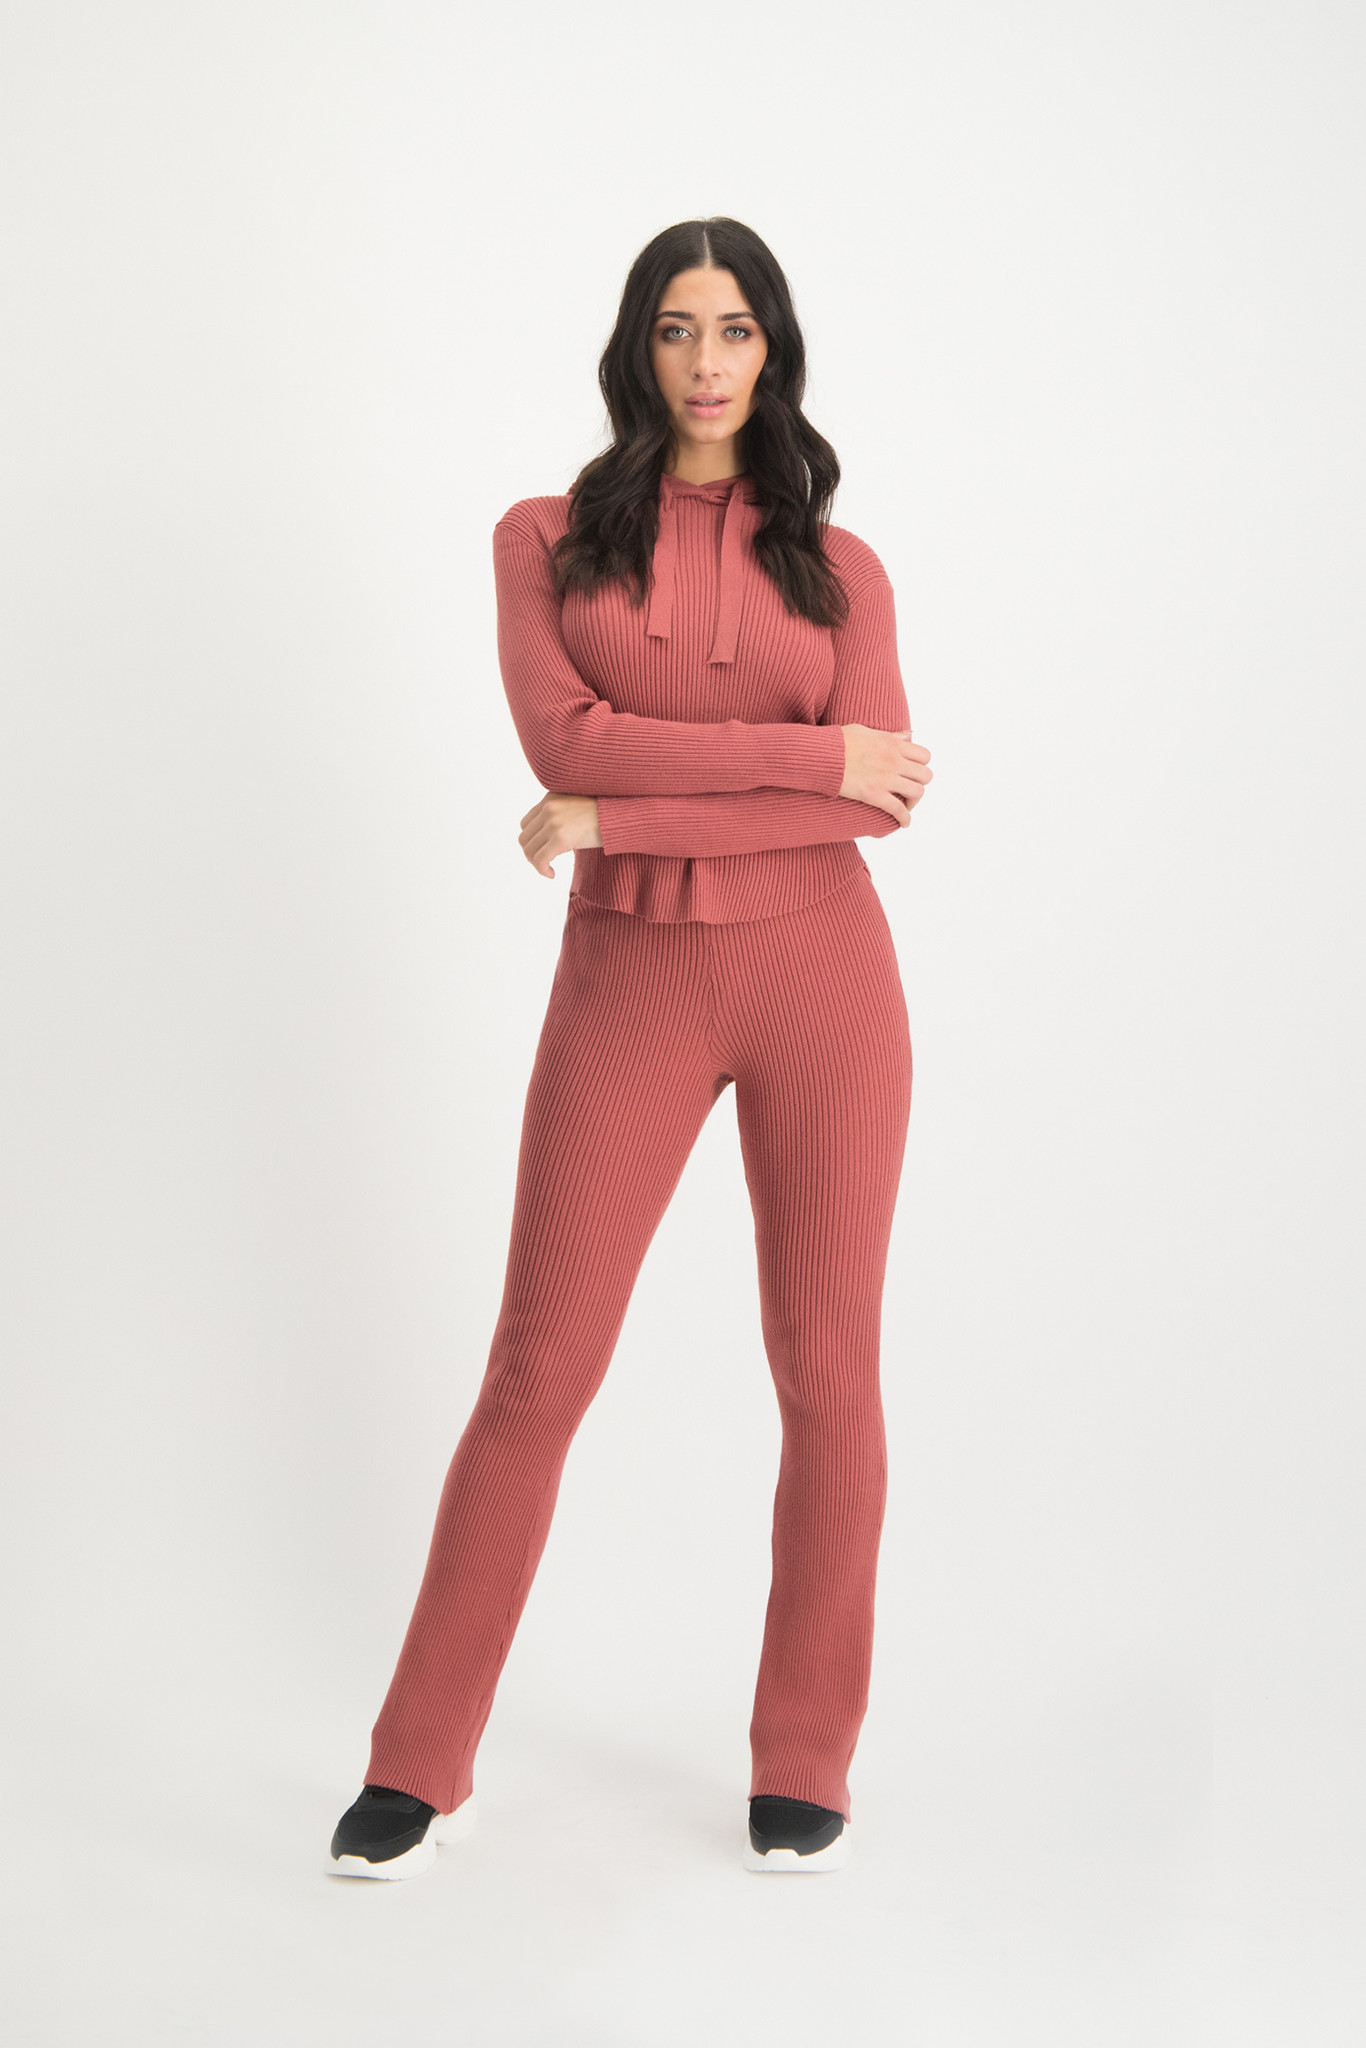 Lofty Manner Pink Flared Pants Florence